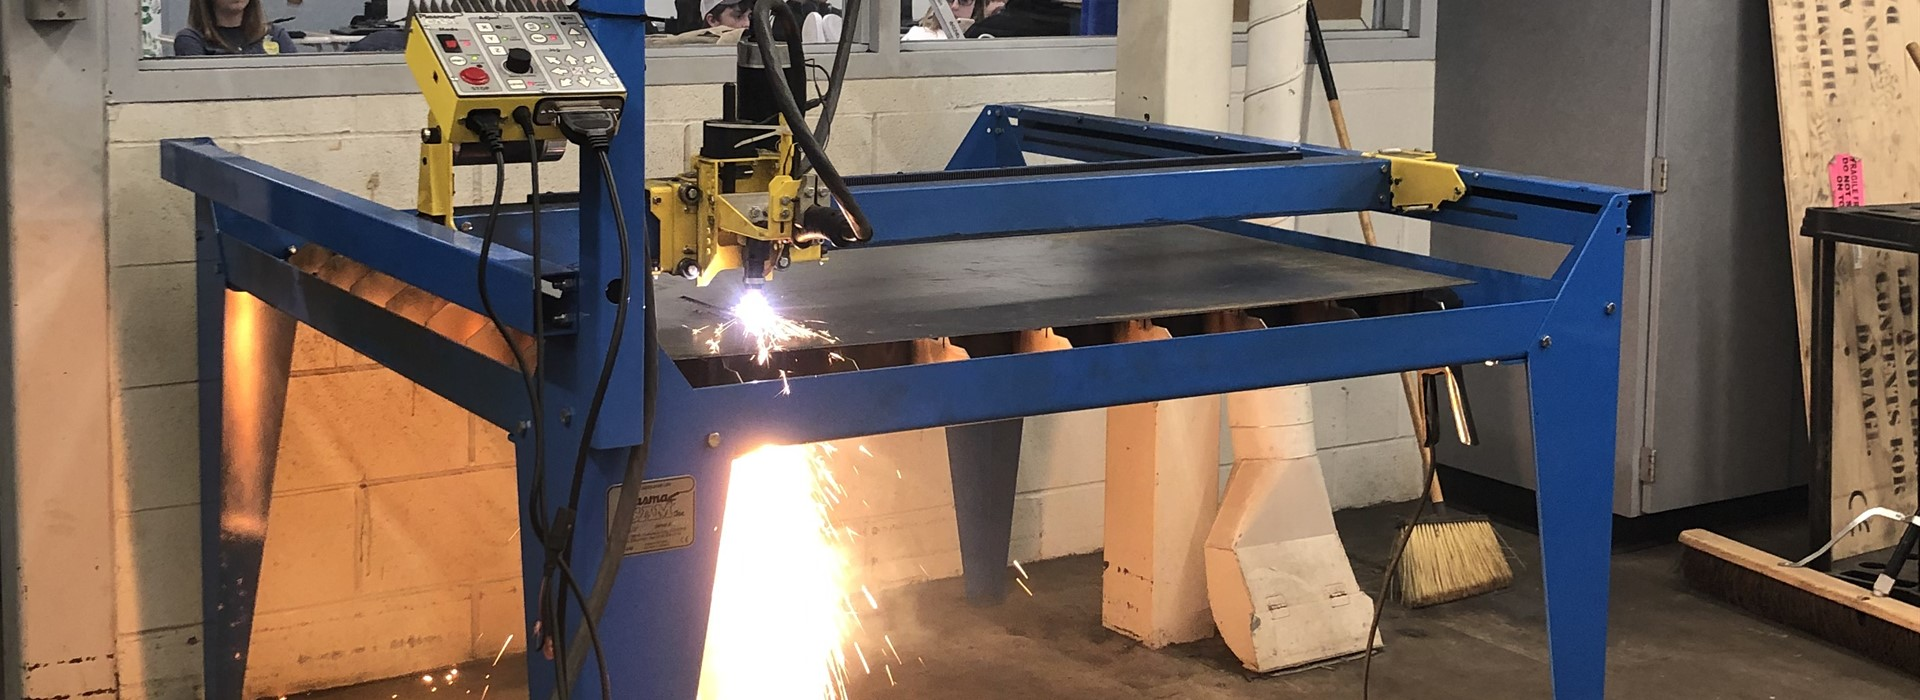 Ag's Plasma Cutter in action